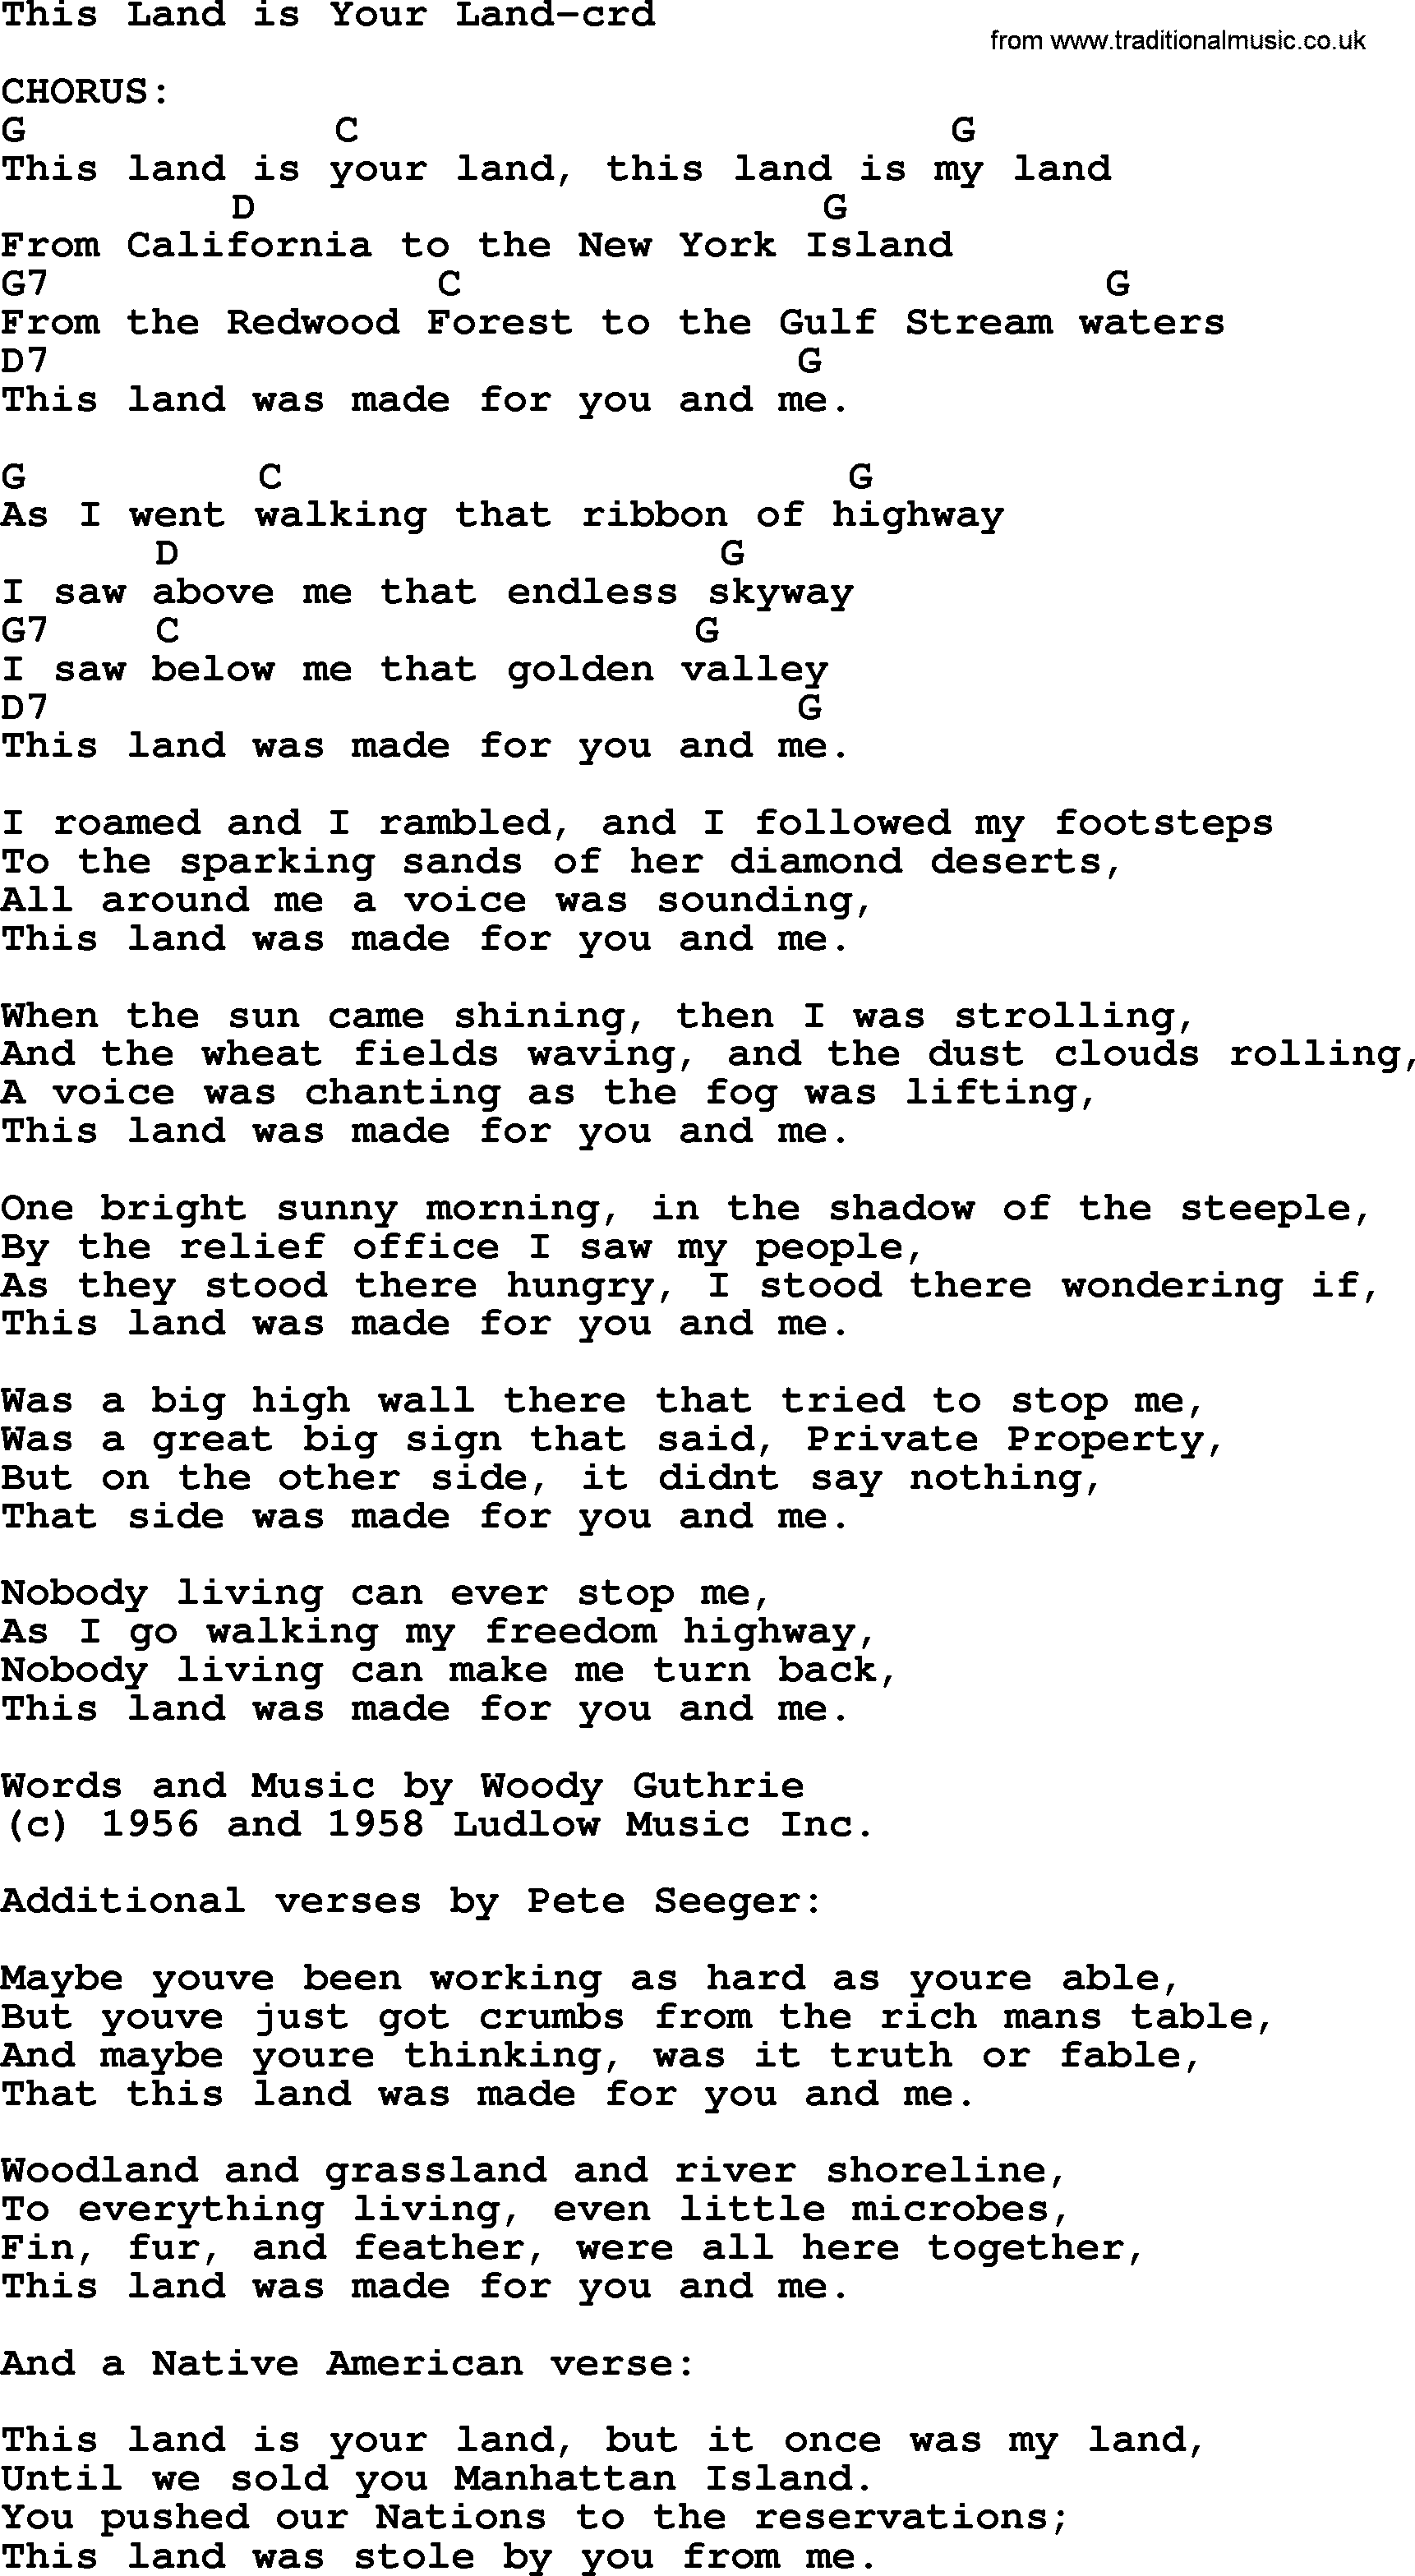 Pete seeger song this land is your land lyrics and chords pete seeger song this land is your land lyrics and chords hexwebz Images